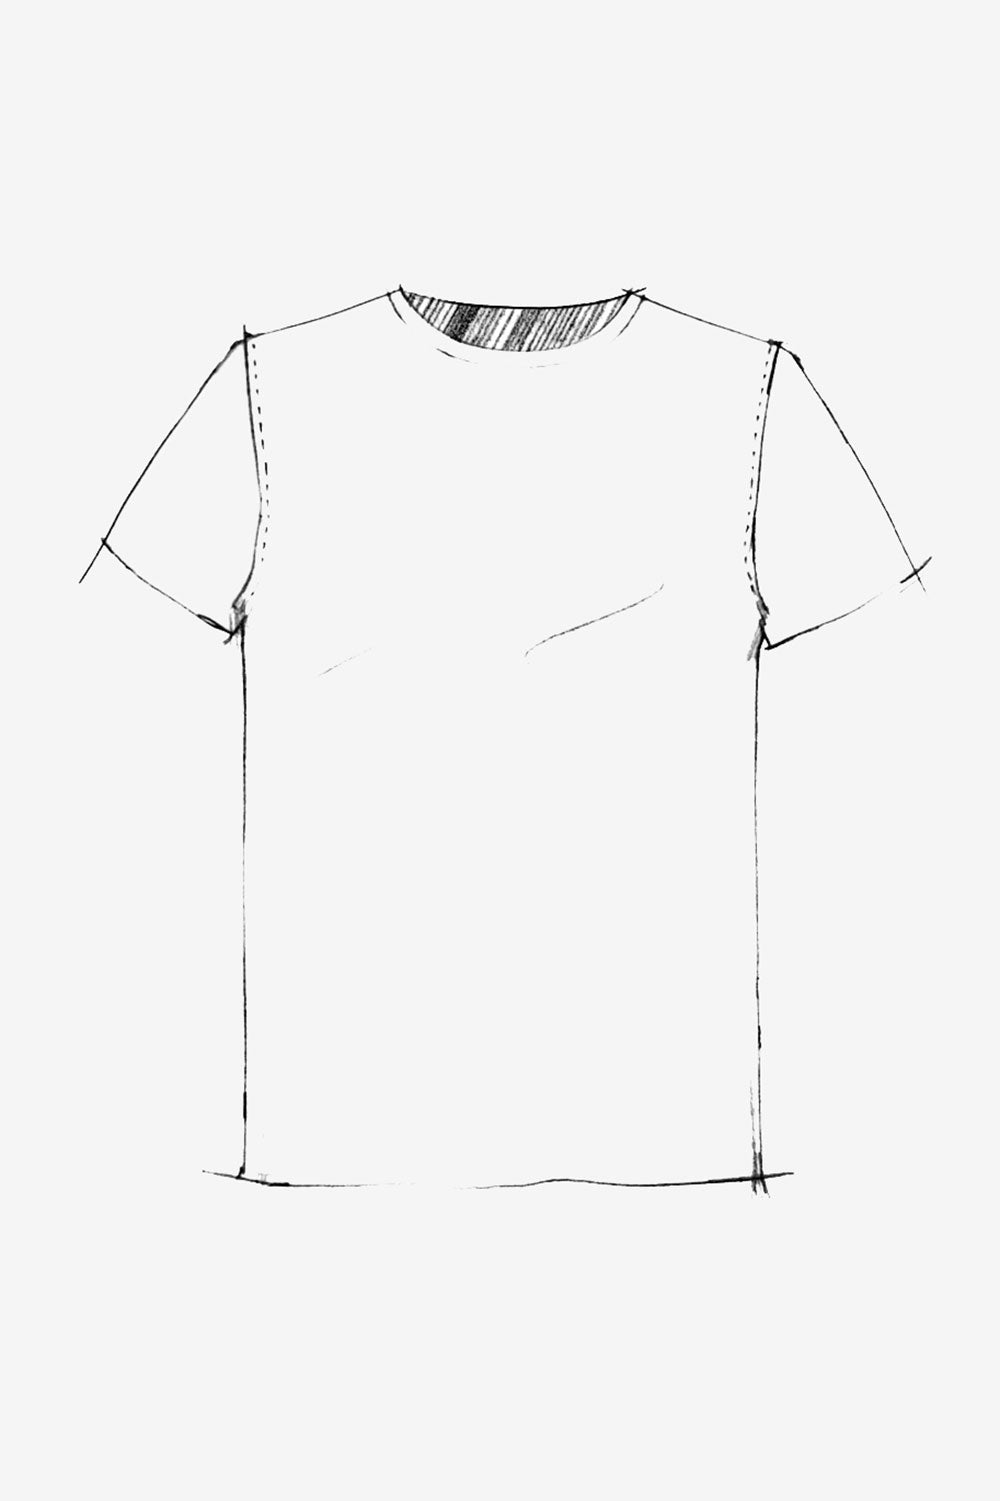 The School of Making The Unisex T-Shirt Top Pattern Unisex DIY Clothing Pattern for Hand-Sewn T-Shirt